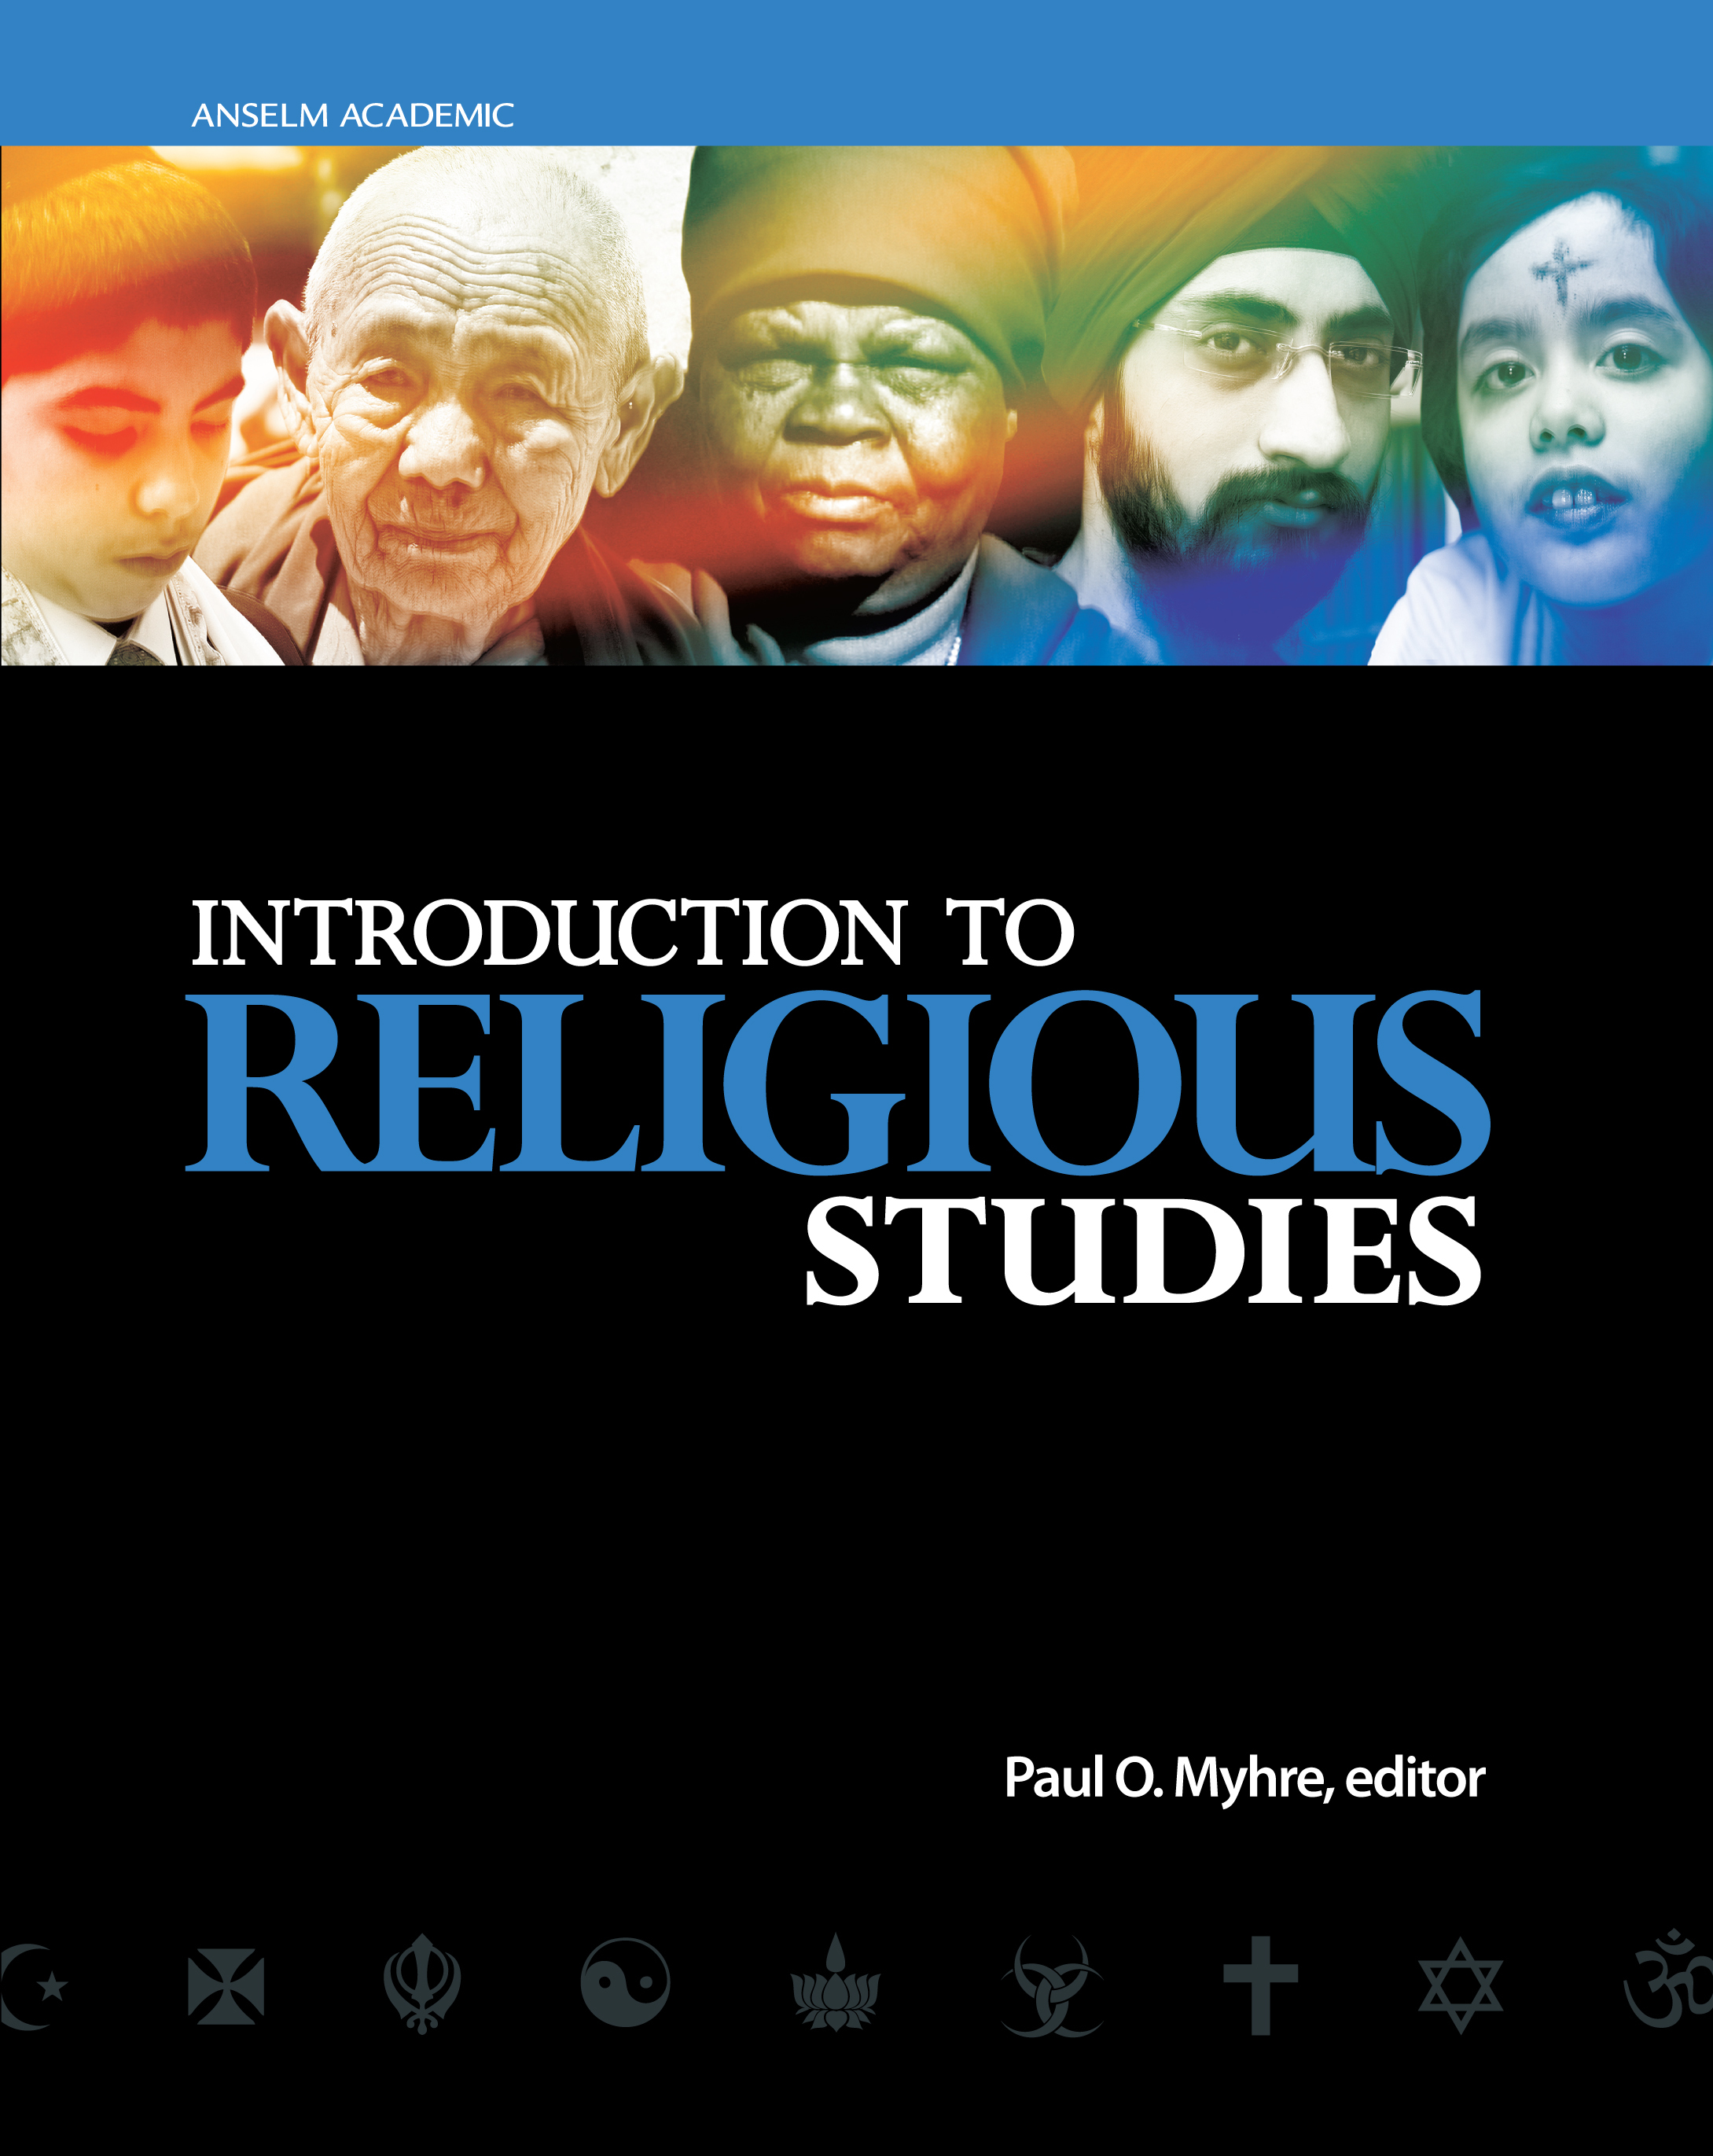 Introduction to Religious Studies - ePub